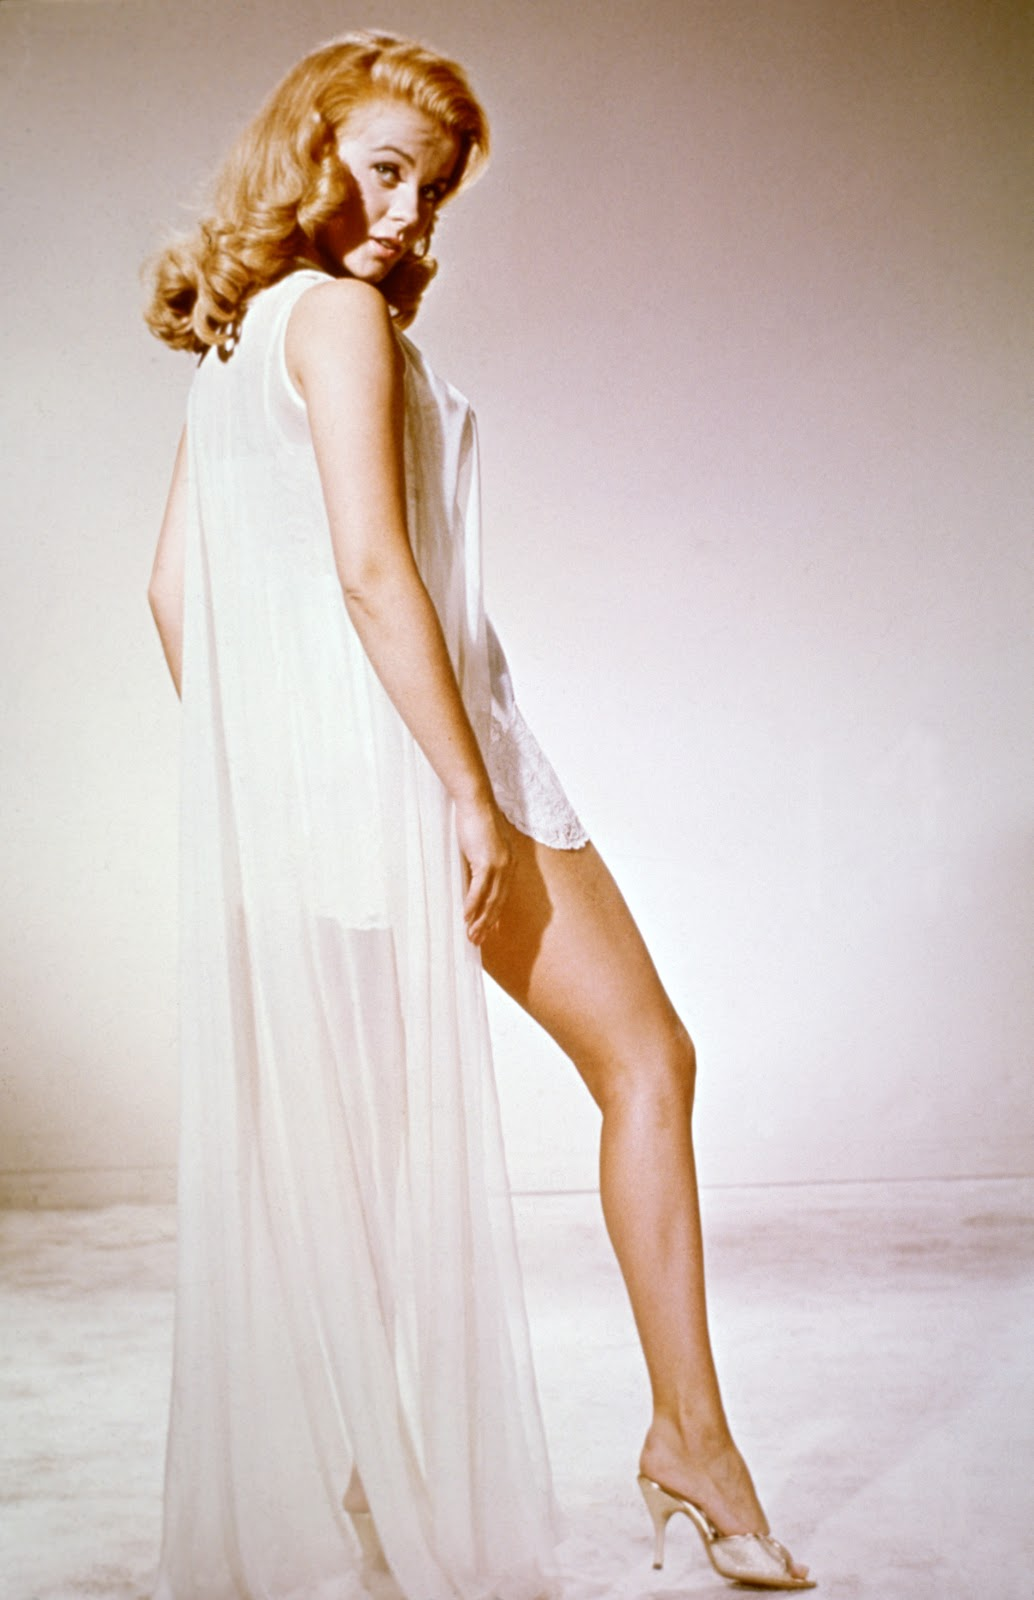 Ann Margret What Am I Supposed To Do Lets Stop Kidding Each Other